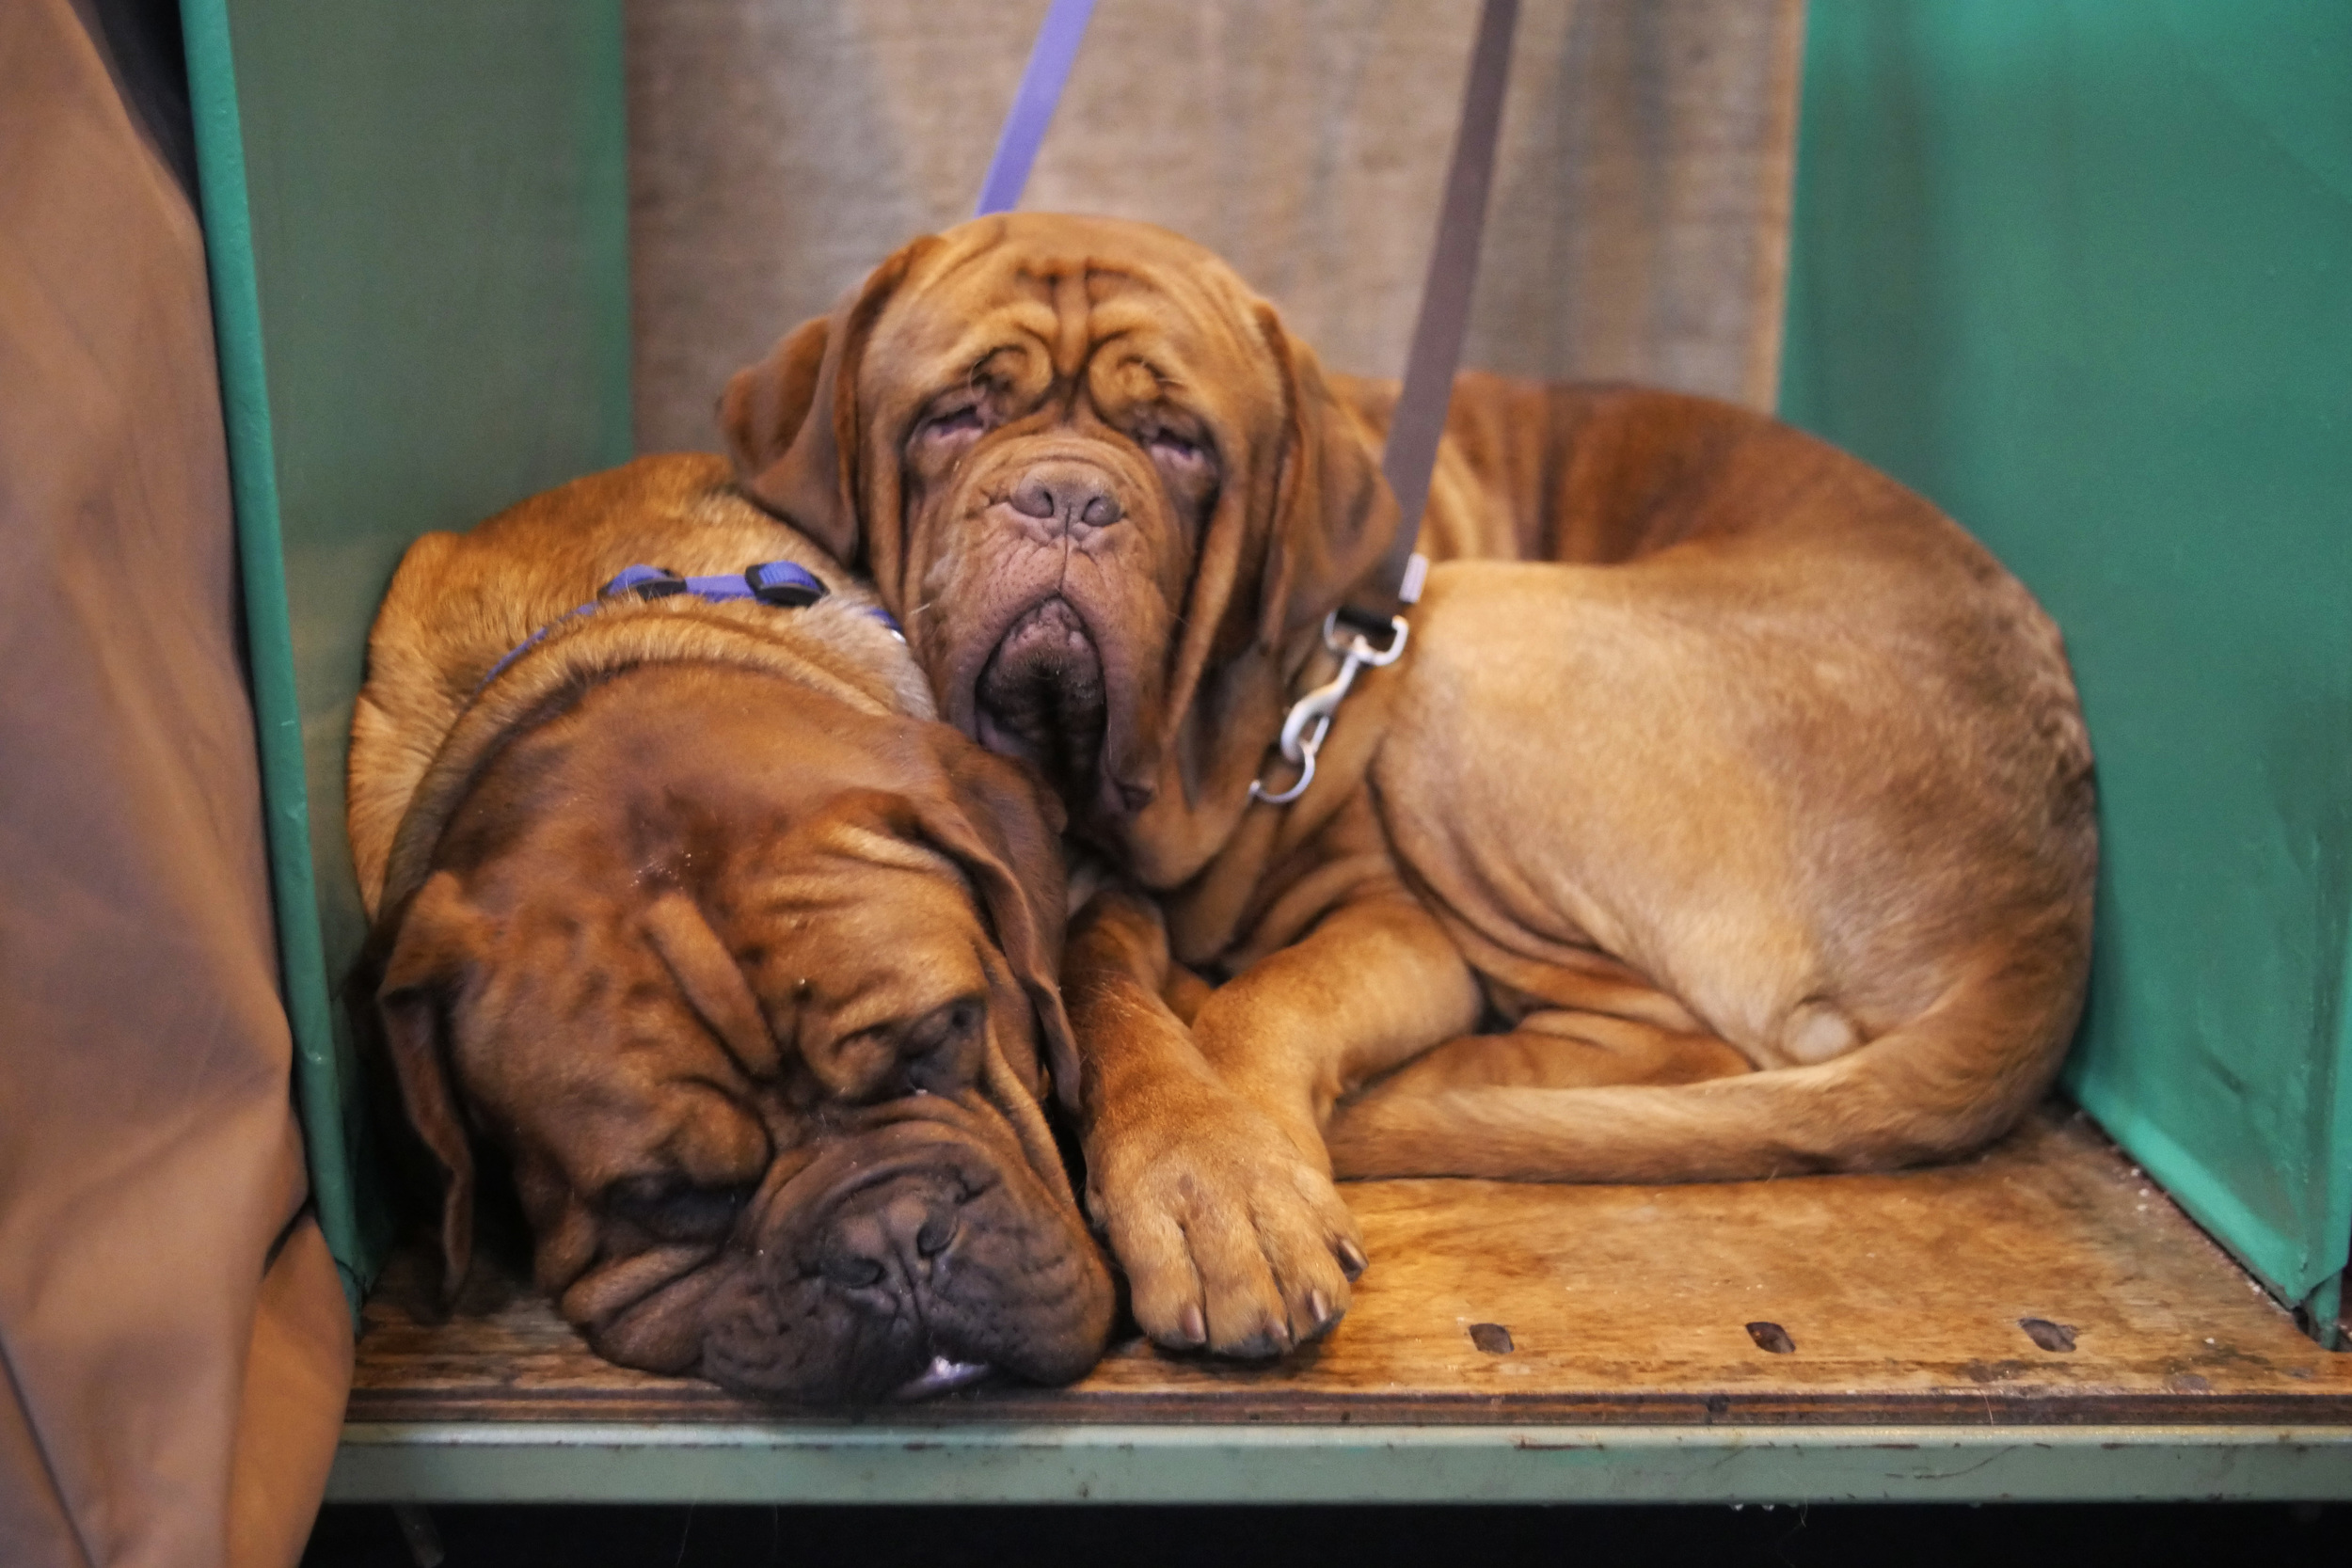 Naps are better when there's someone else to share them with! Especially when you're as huge as a dogue de Bordeaux.